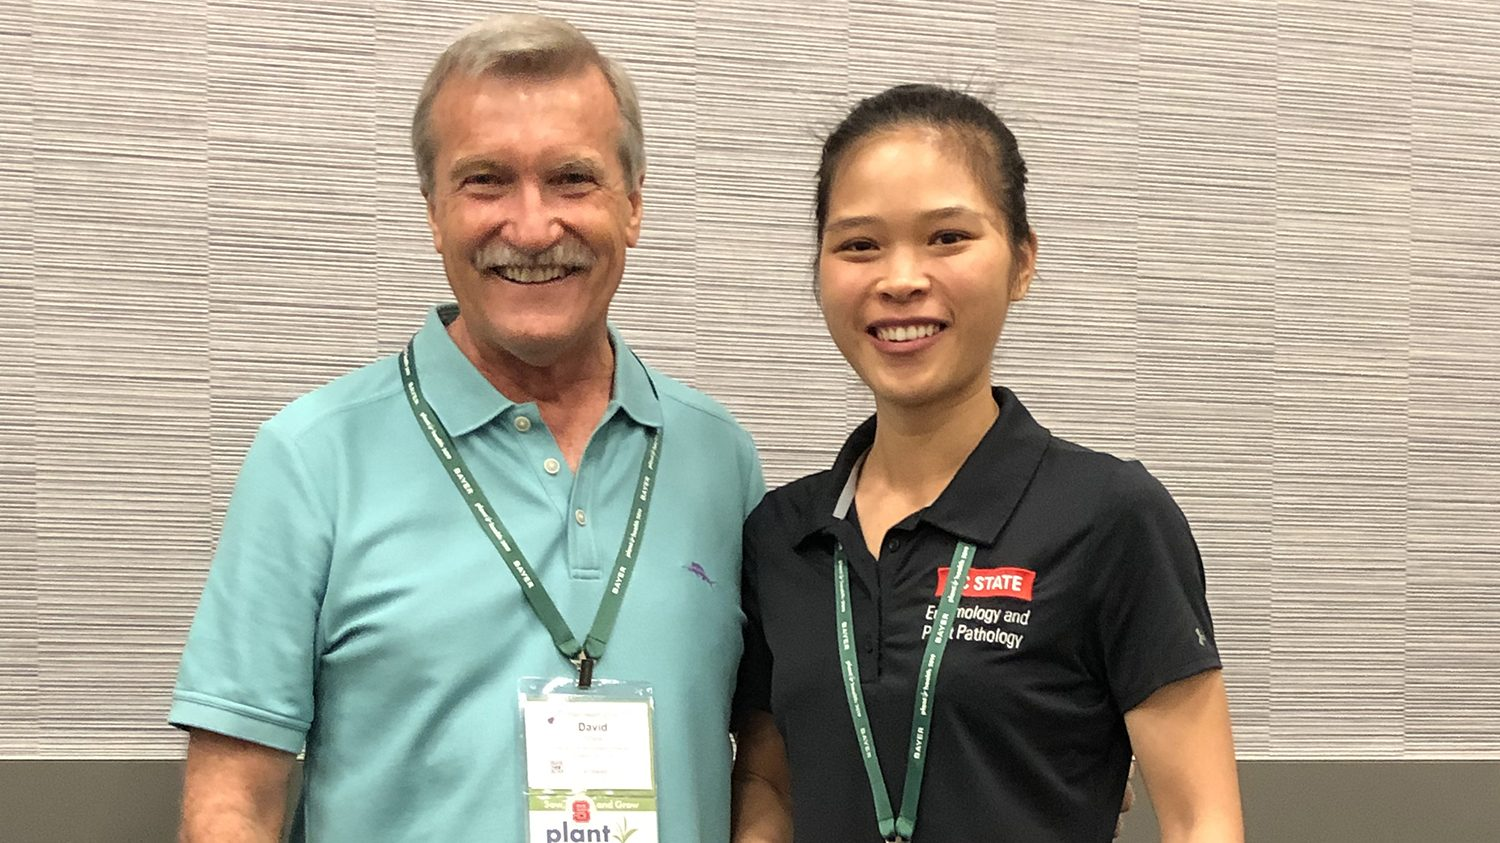 Jing Jin with Dr. Dave Shew